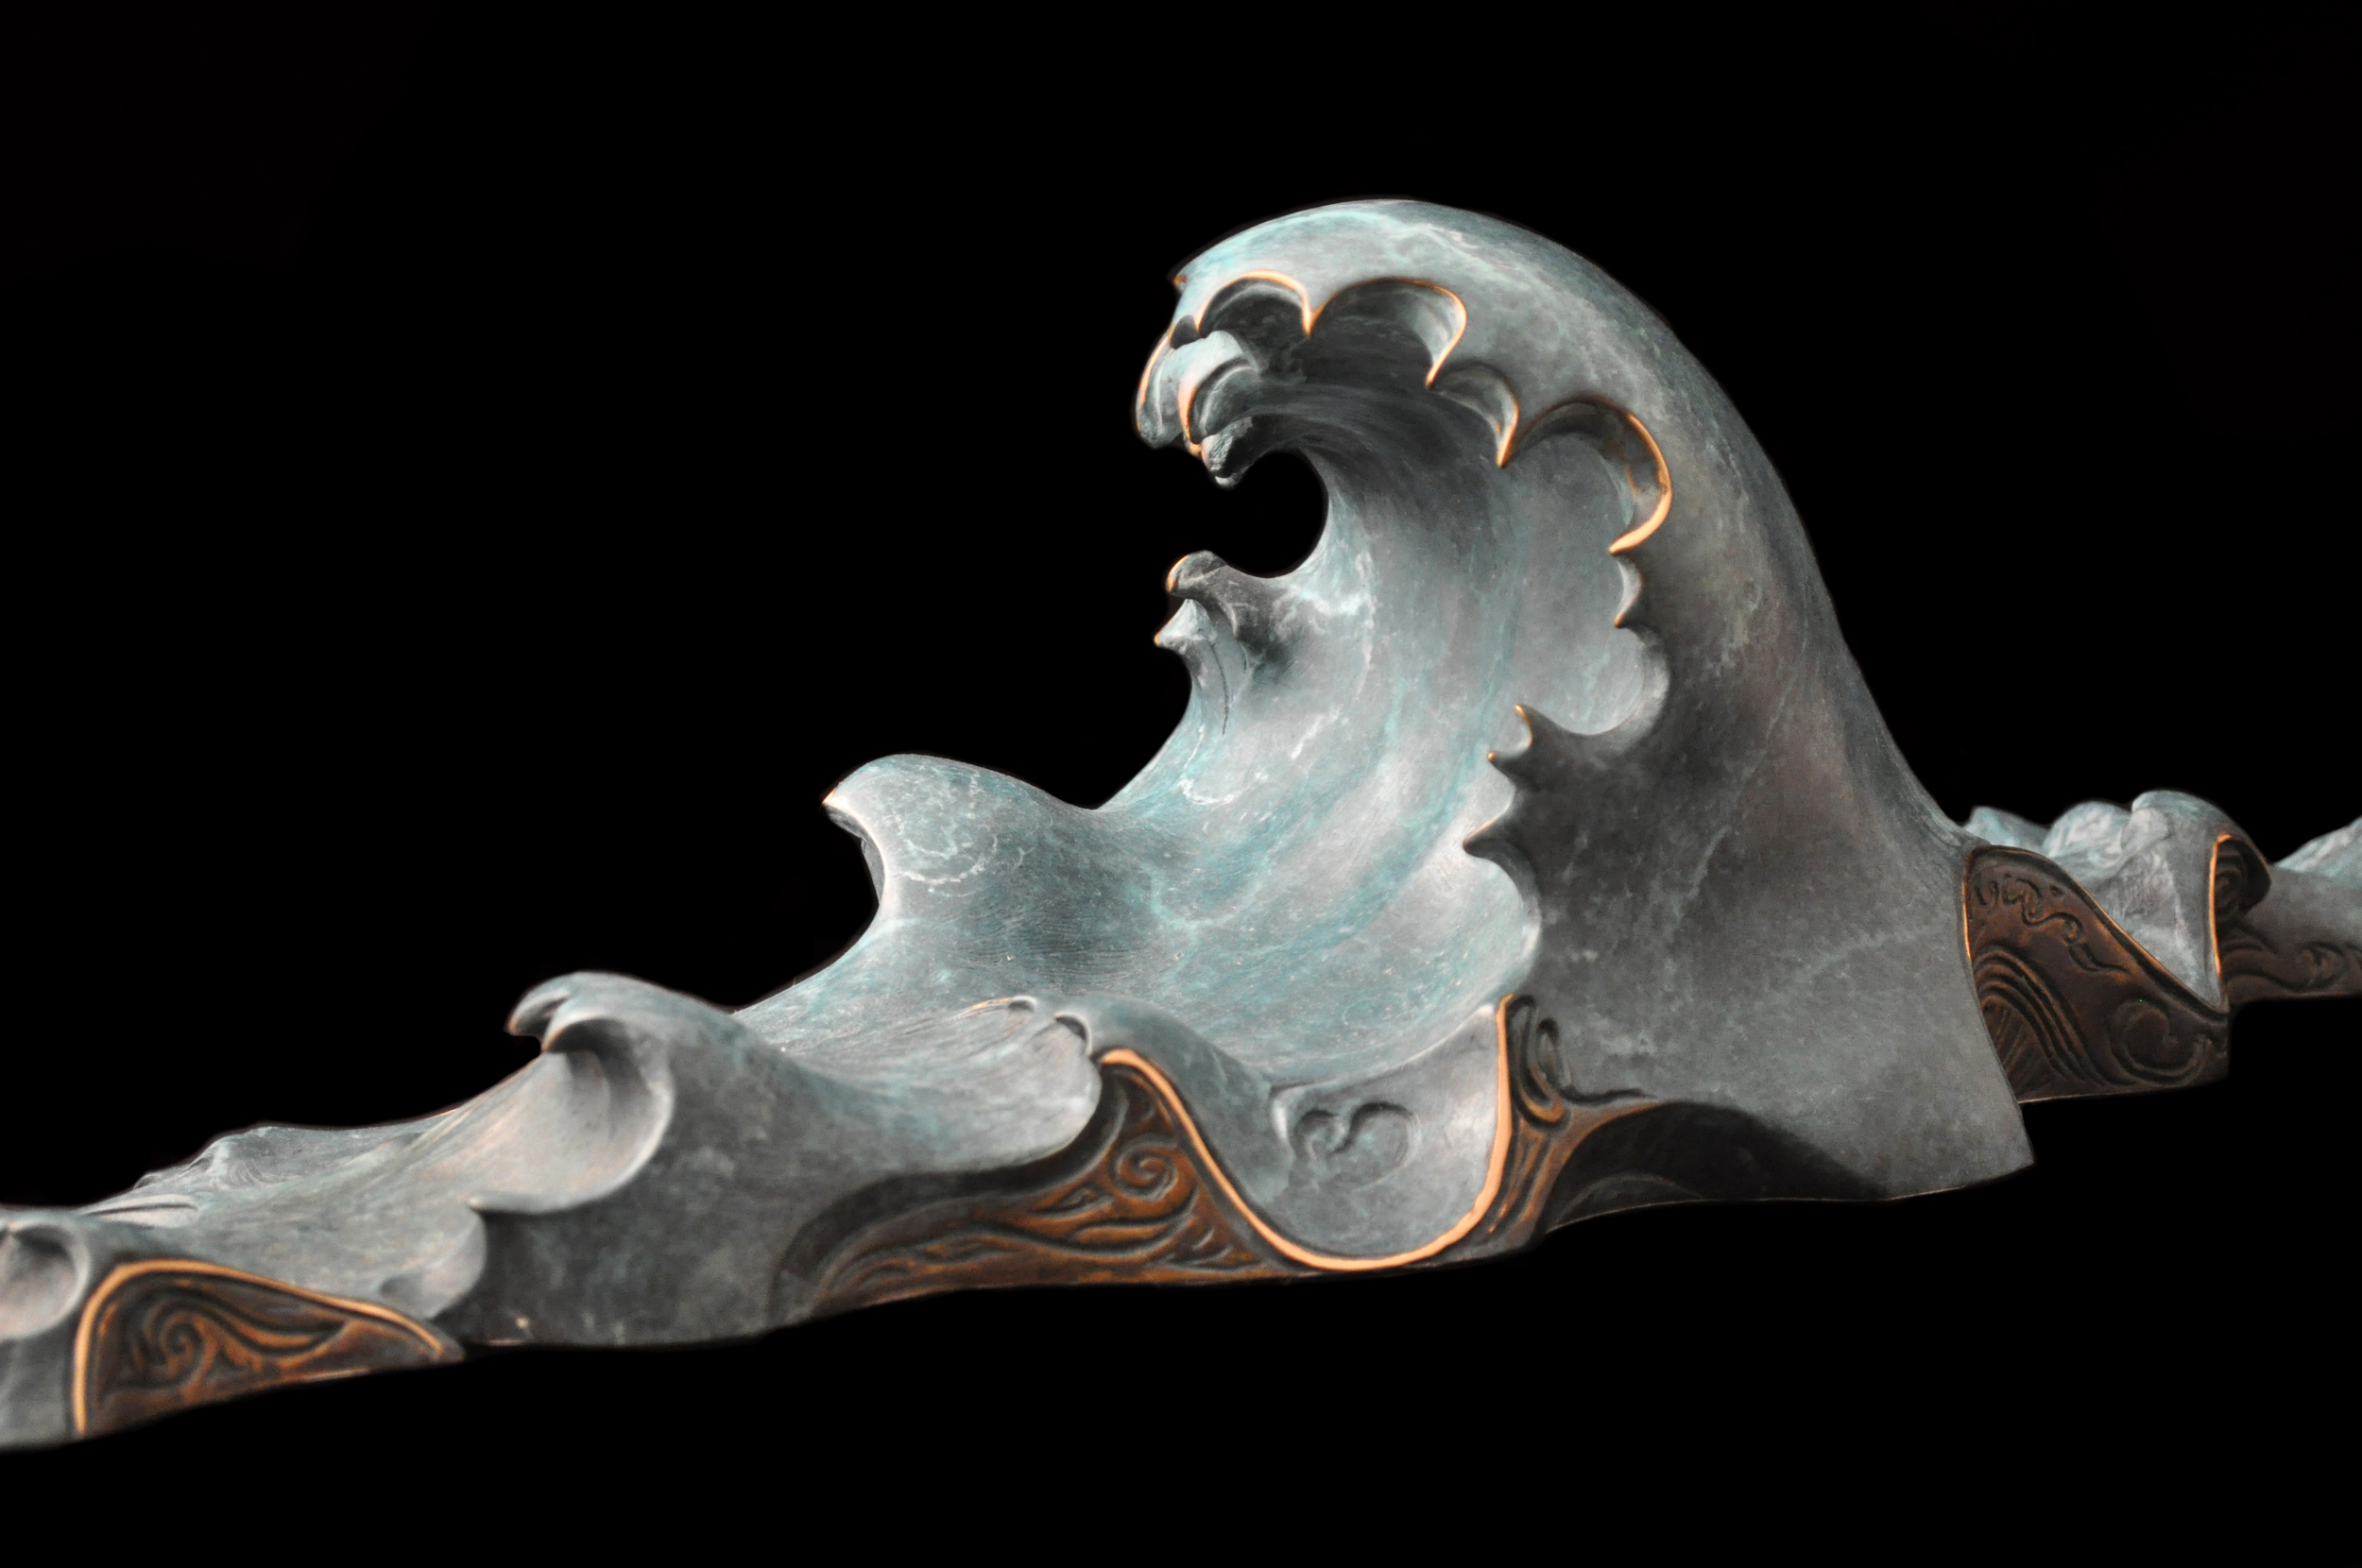 bronze-wave-sculpture-john-maisano-8.jpg